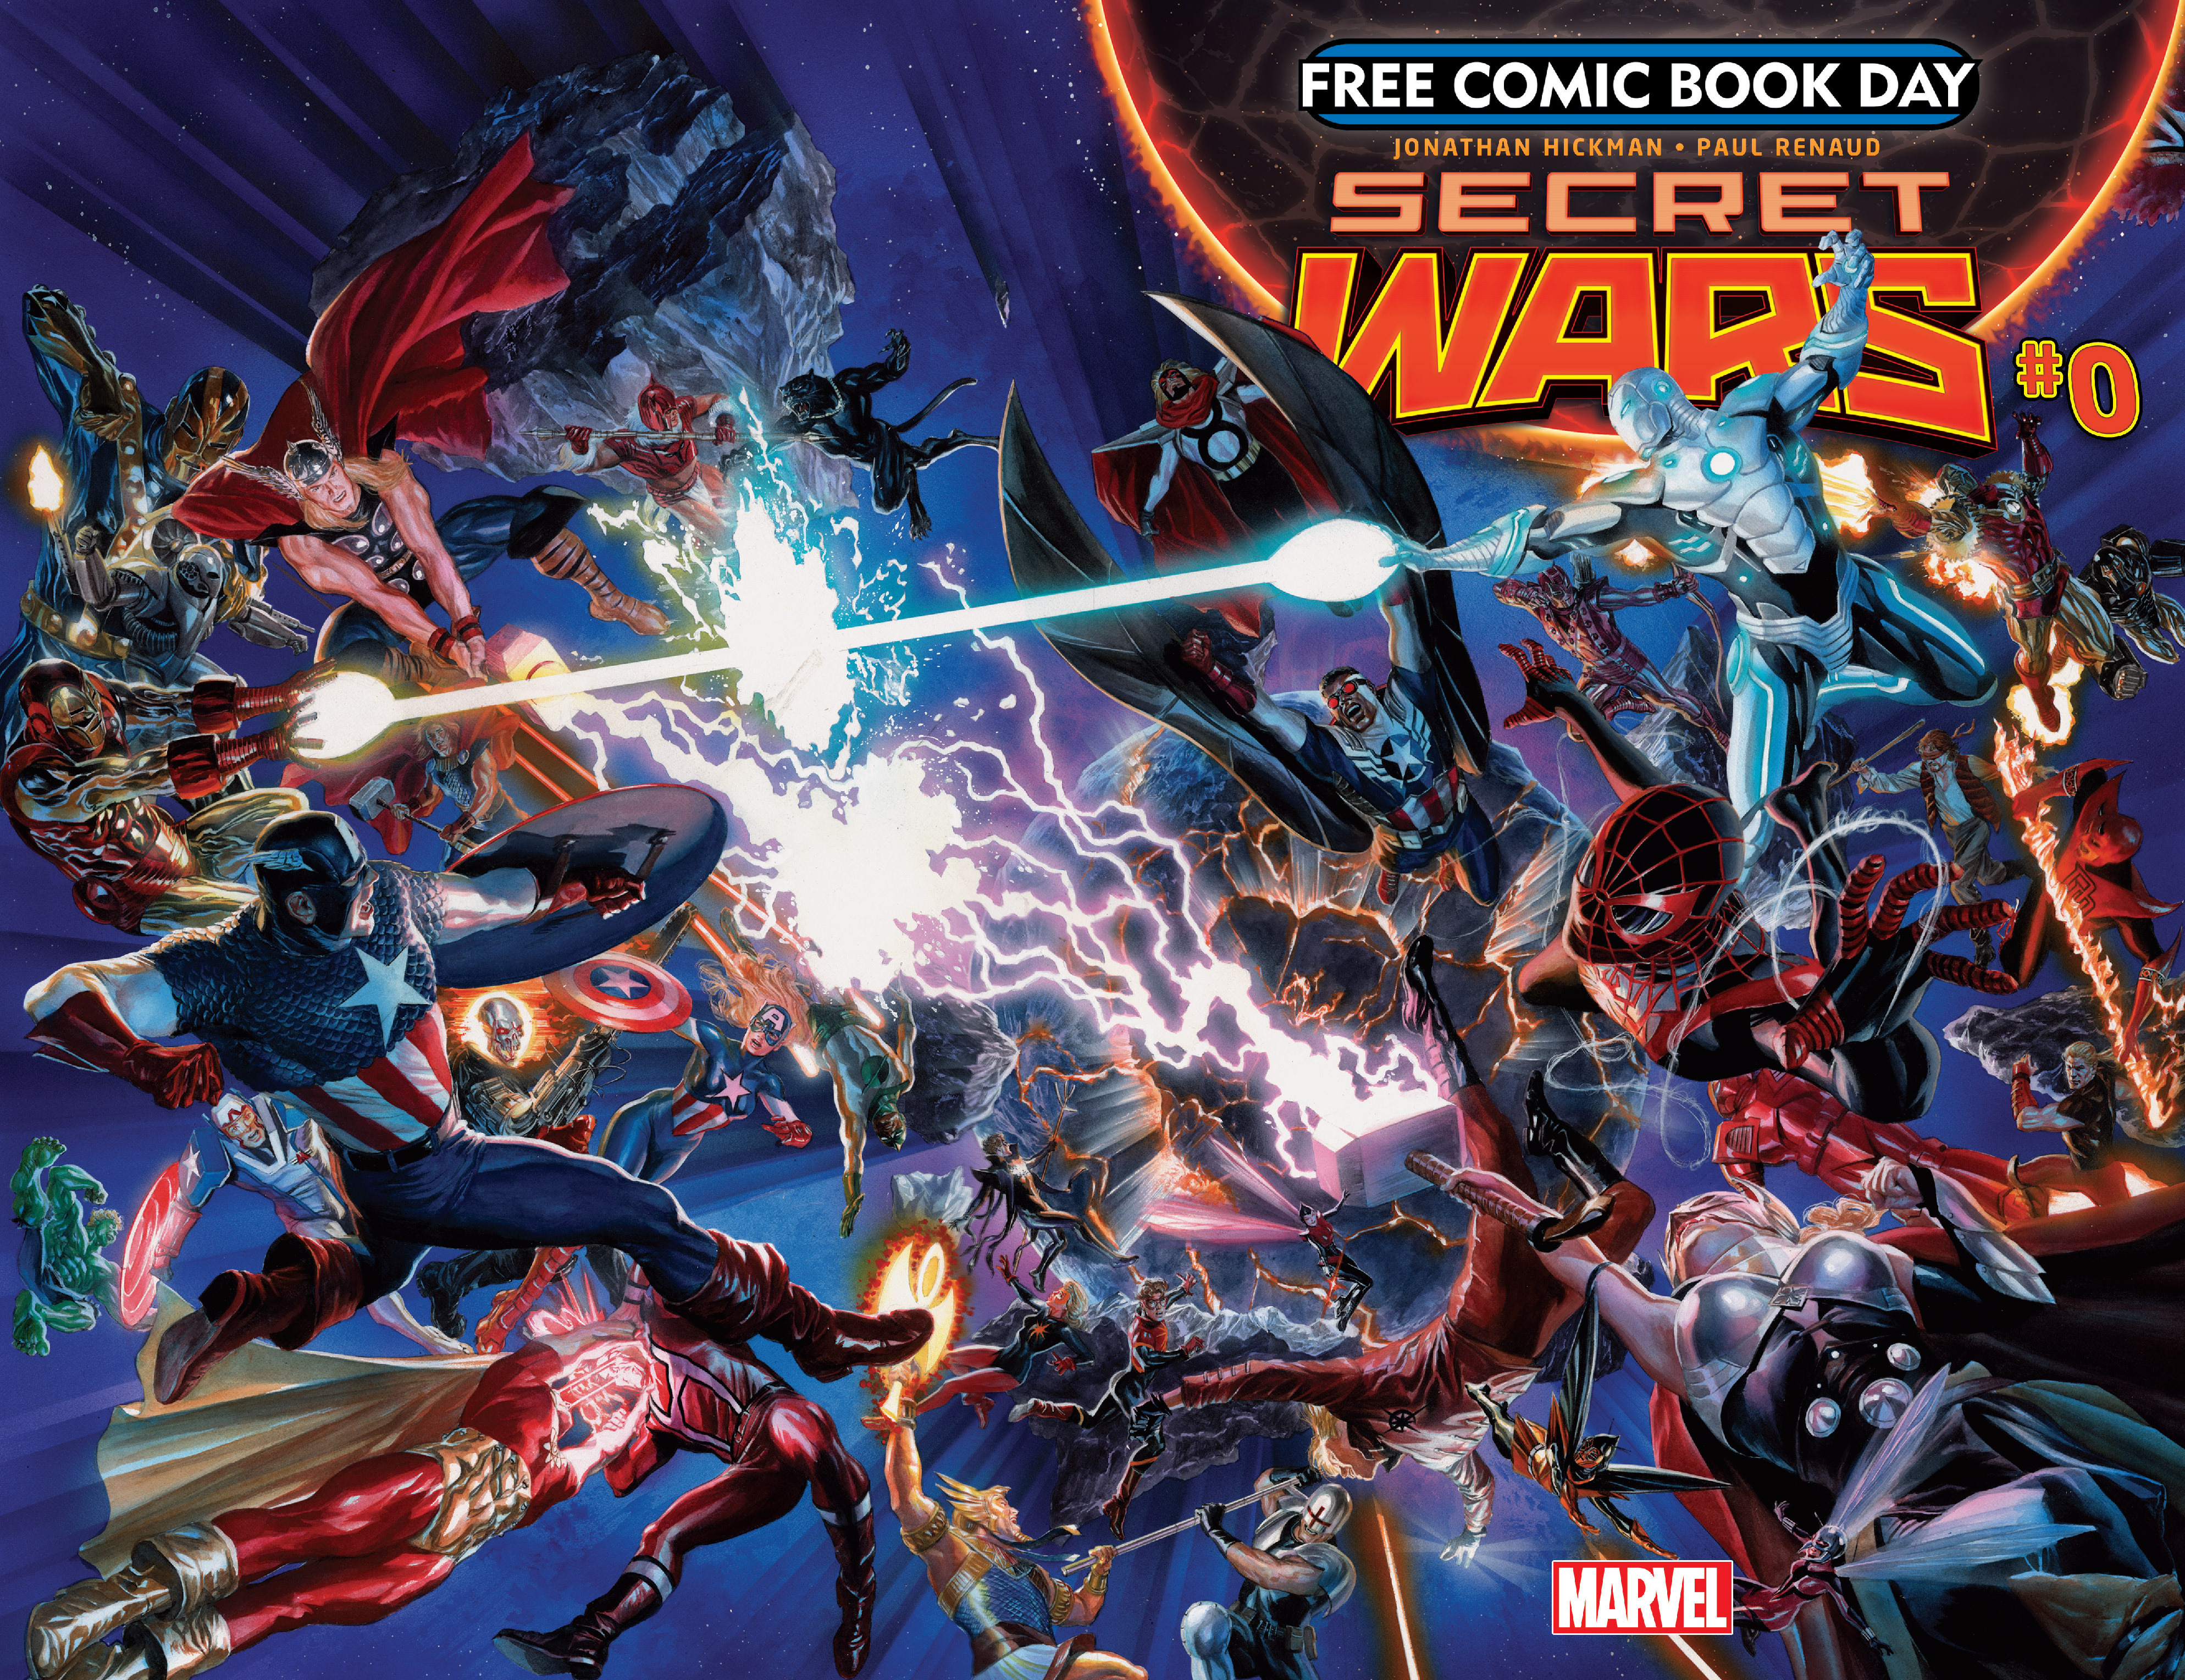 Secret Wars 0000 FCBD 2015 Secret Wars 0000 FCBD 2015 Wrap.jpg